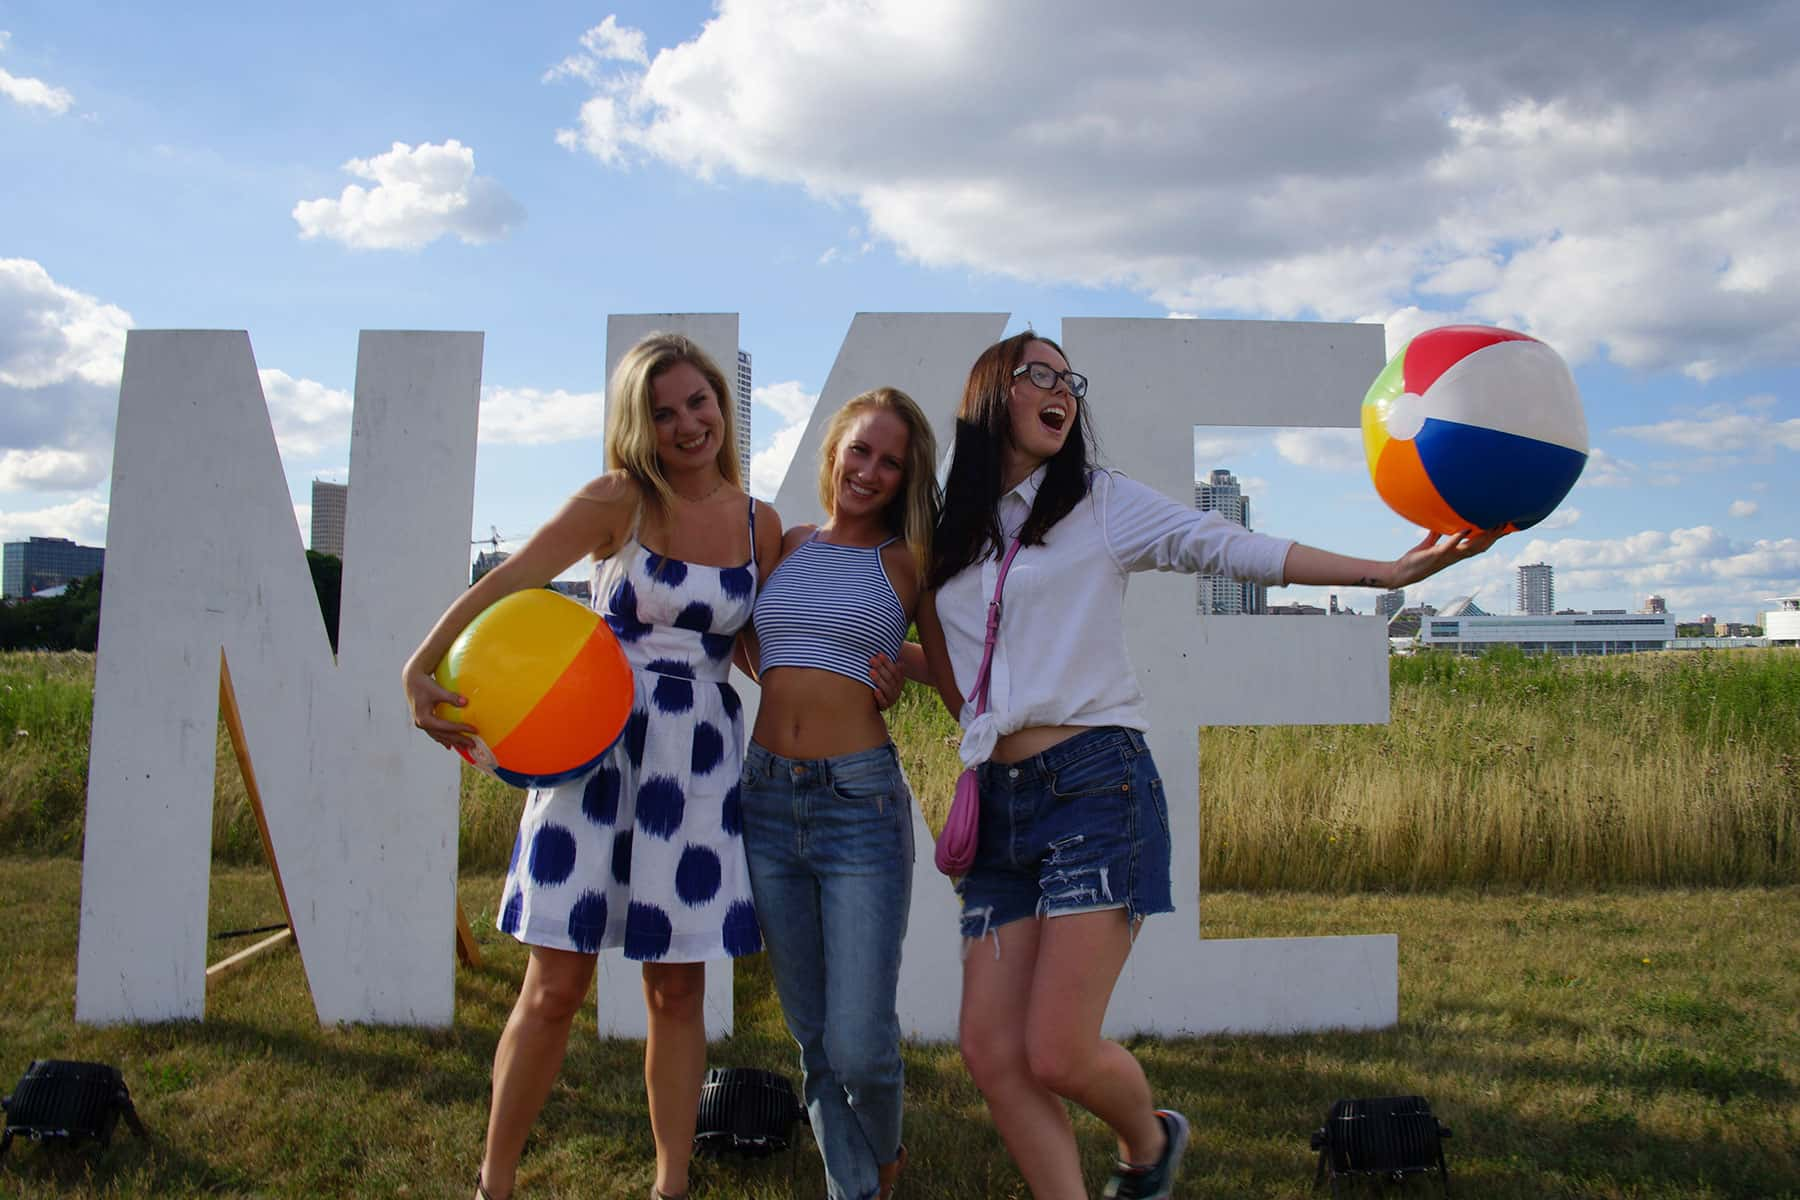 photo essay beach party raises funds for lakeshore state park photo essay beach party raises funds for lakeshore state park